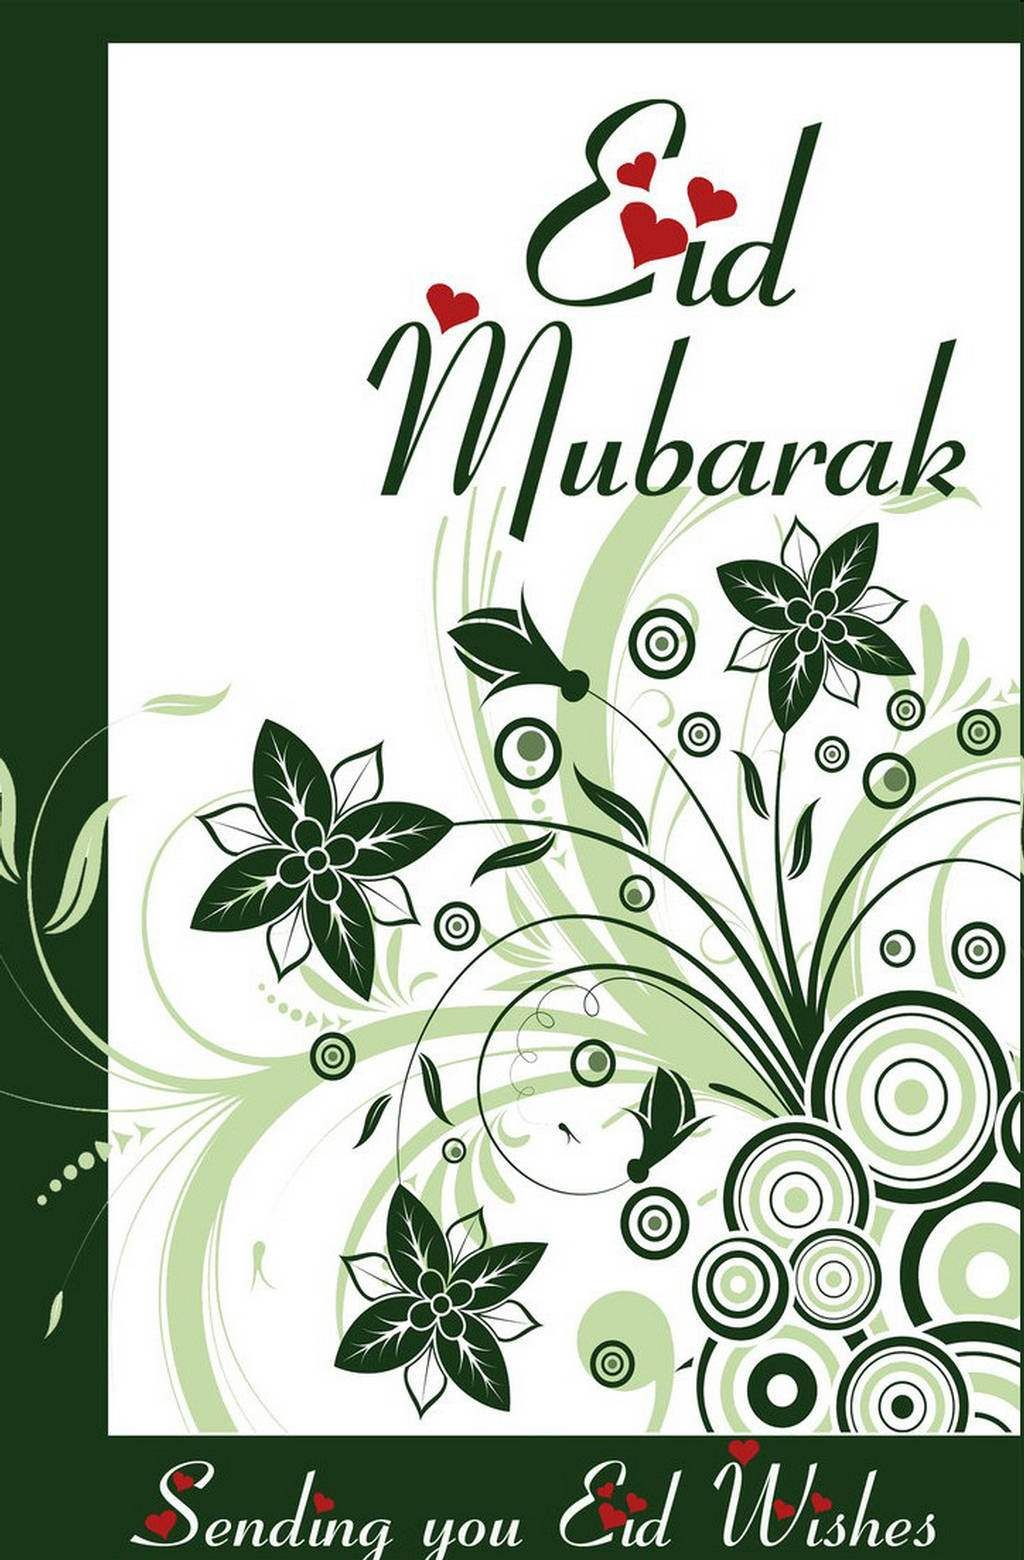 Download eid mubarak 2015 greeting cards and messages eid eid mubarak 2015 greeting cards and messages which you can use them to wish your family friends and colleagues or can send to your loved ones eid 2015 is kristyandbryce Choice Image